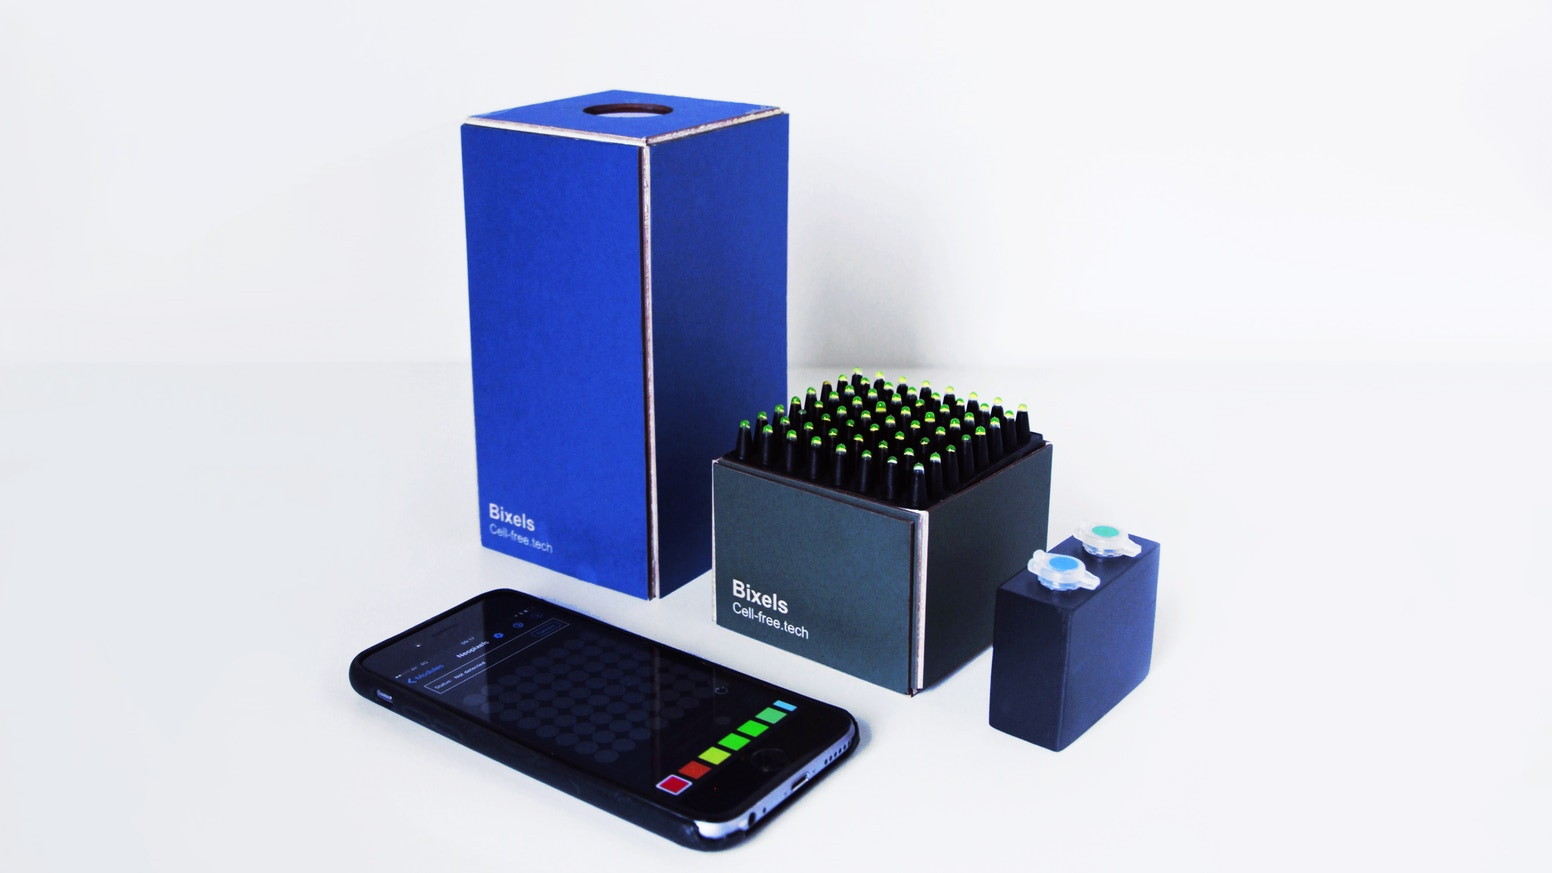 Bixels dna bio display by cell free technology kickstarter bixels dna bio display solutioingenieria Choice Image